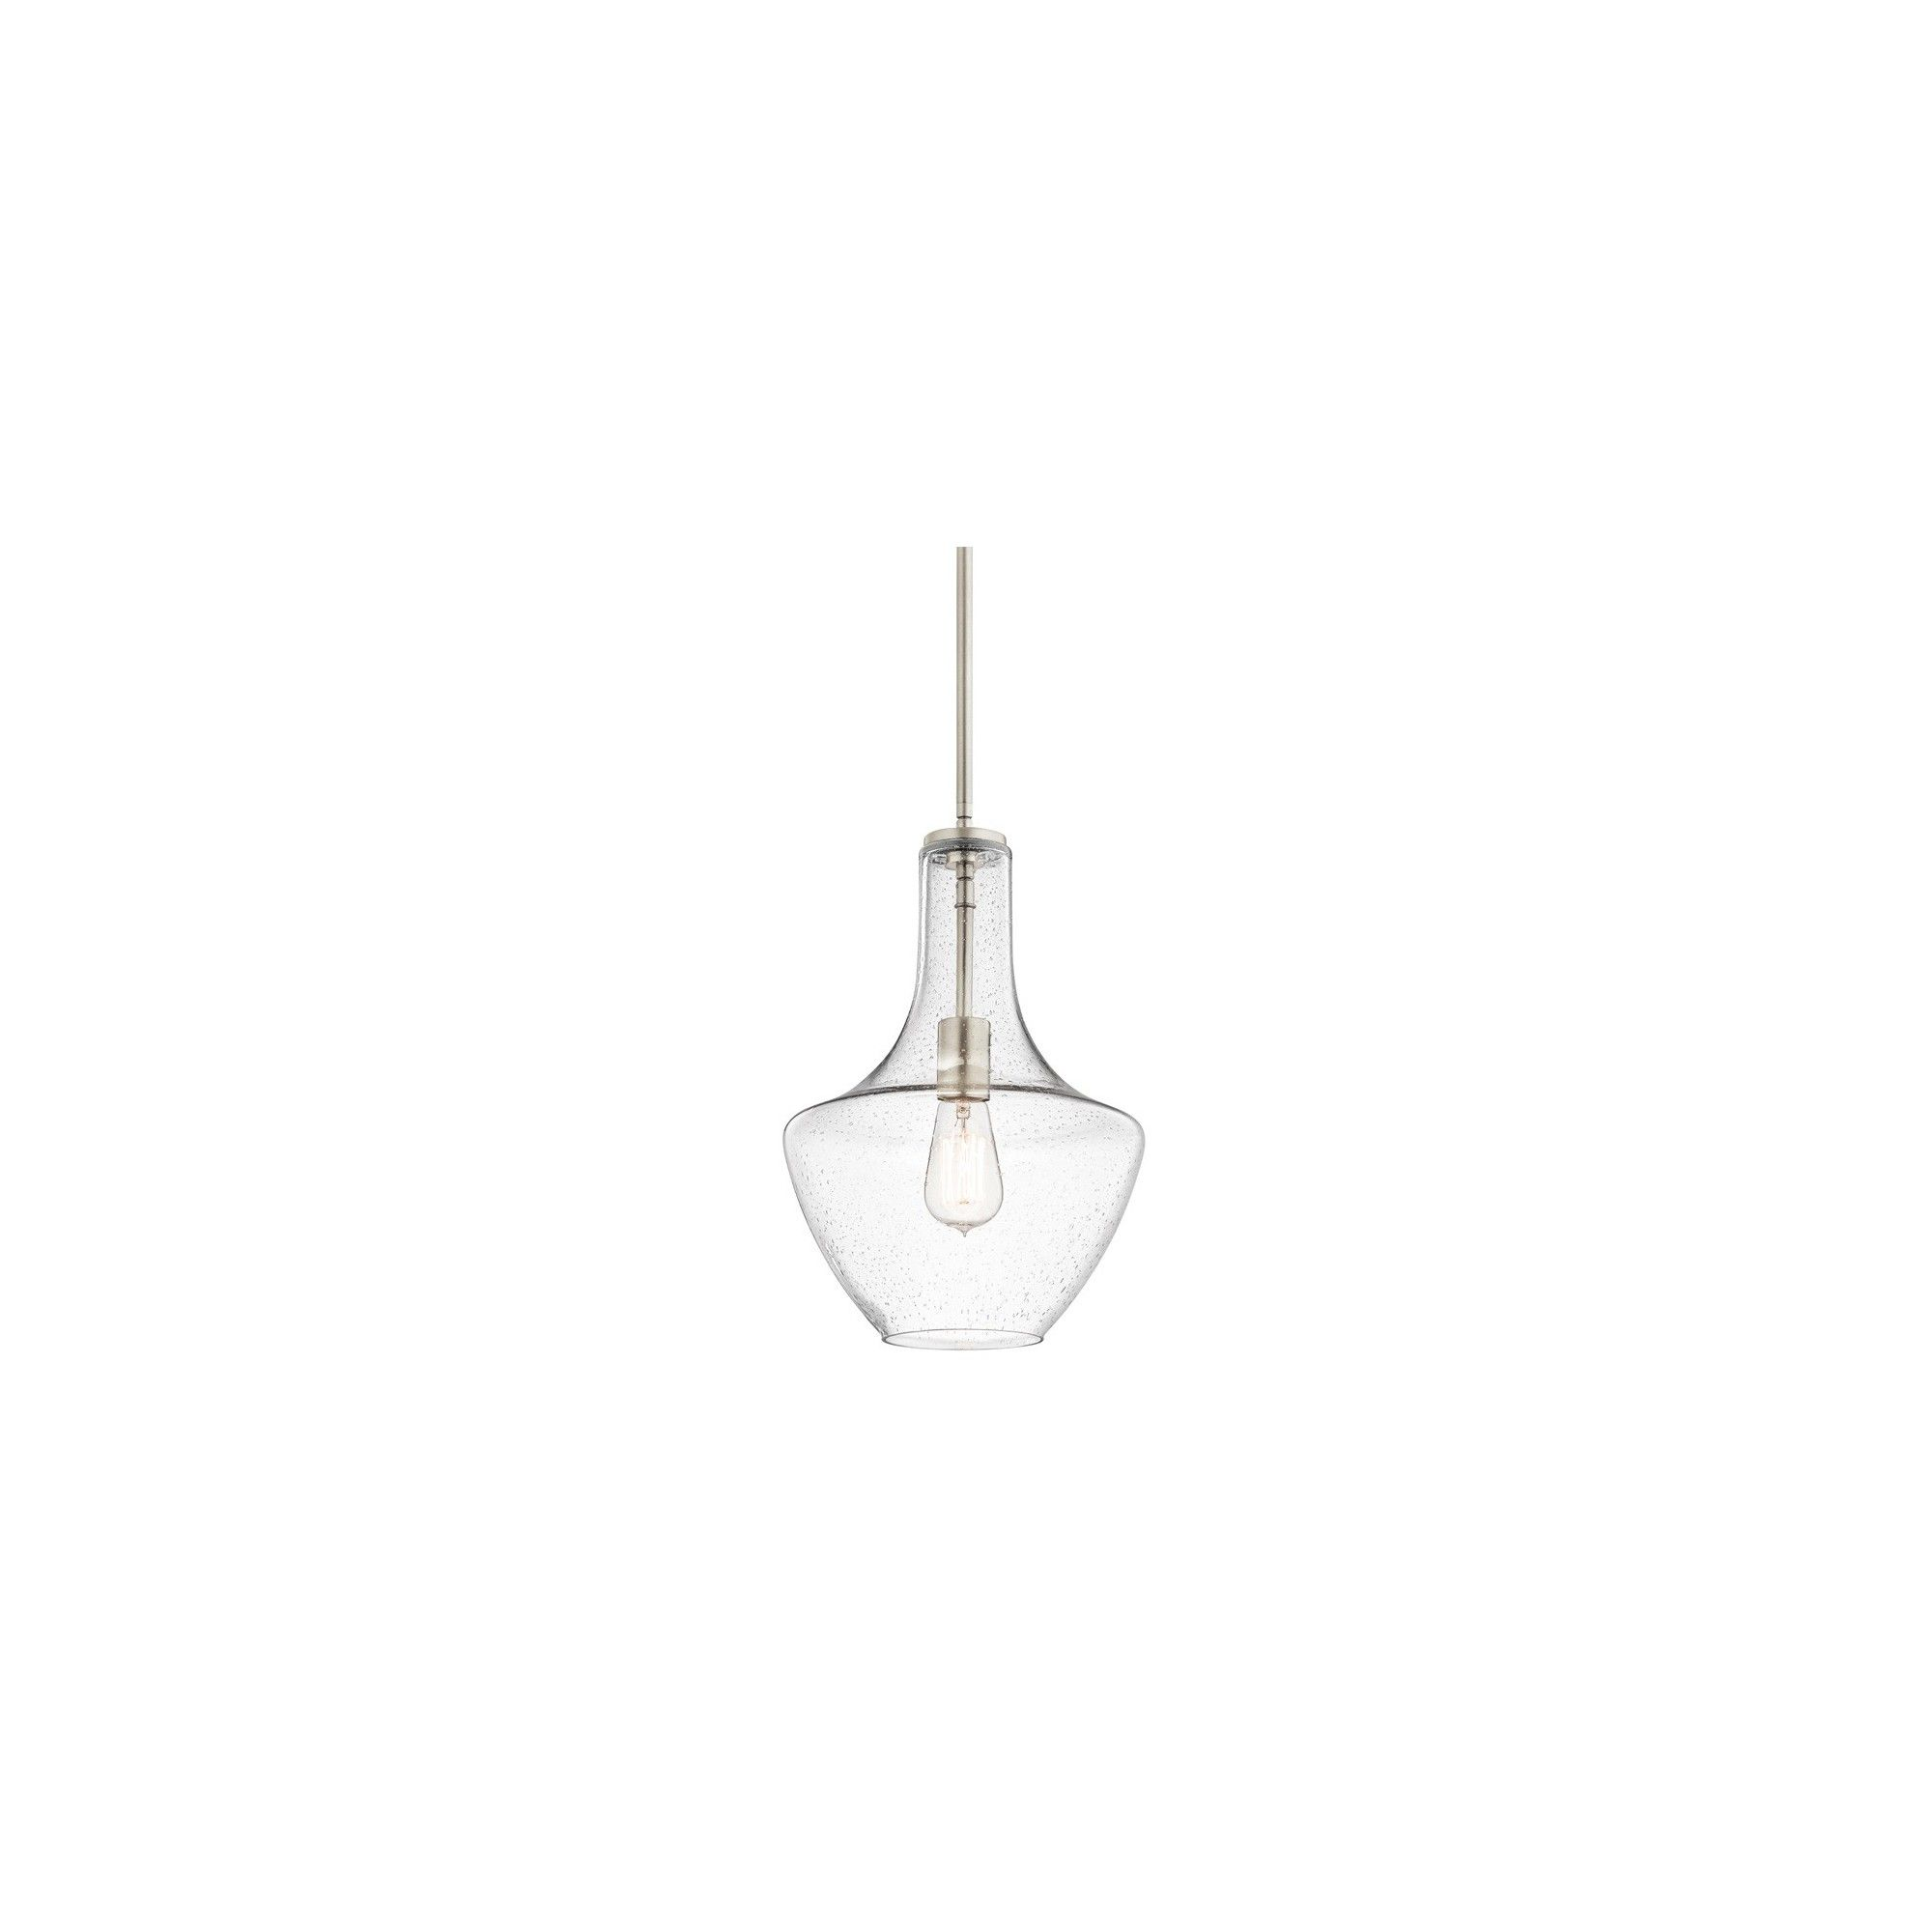 Kichler 42141cs Everly Single Light 11 Wide Pendant With Clear